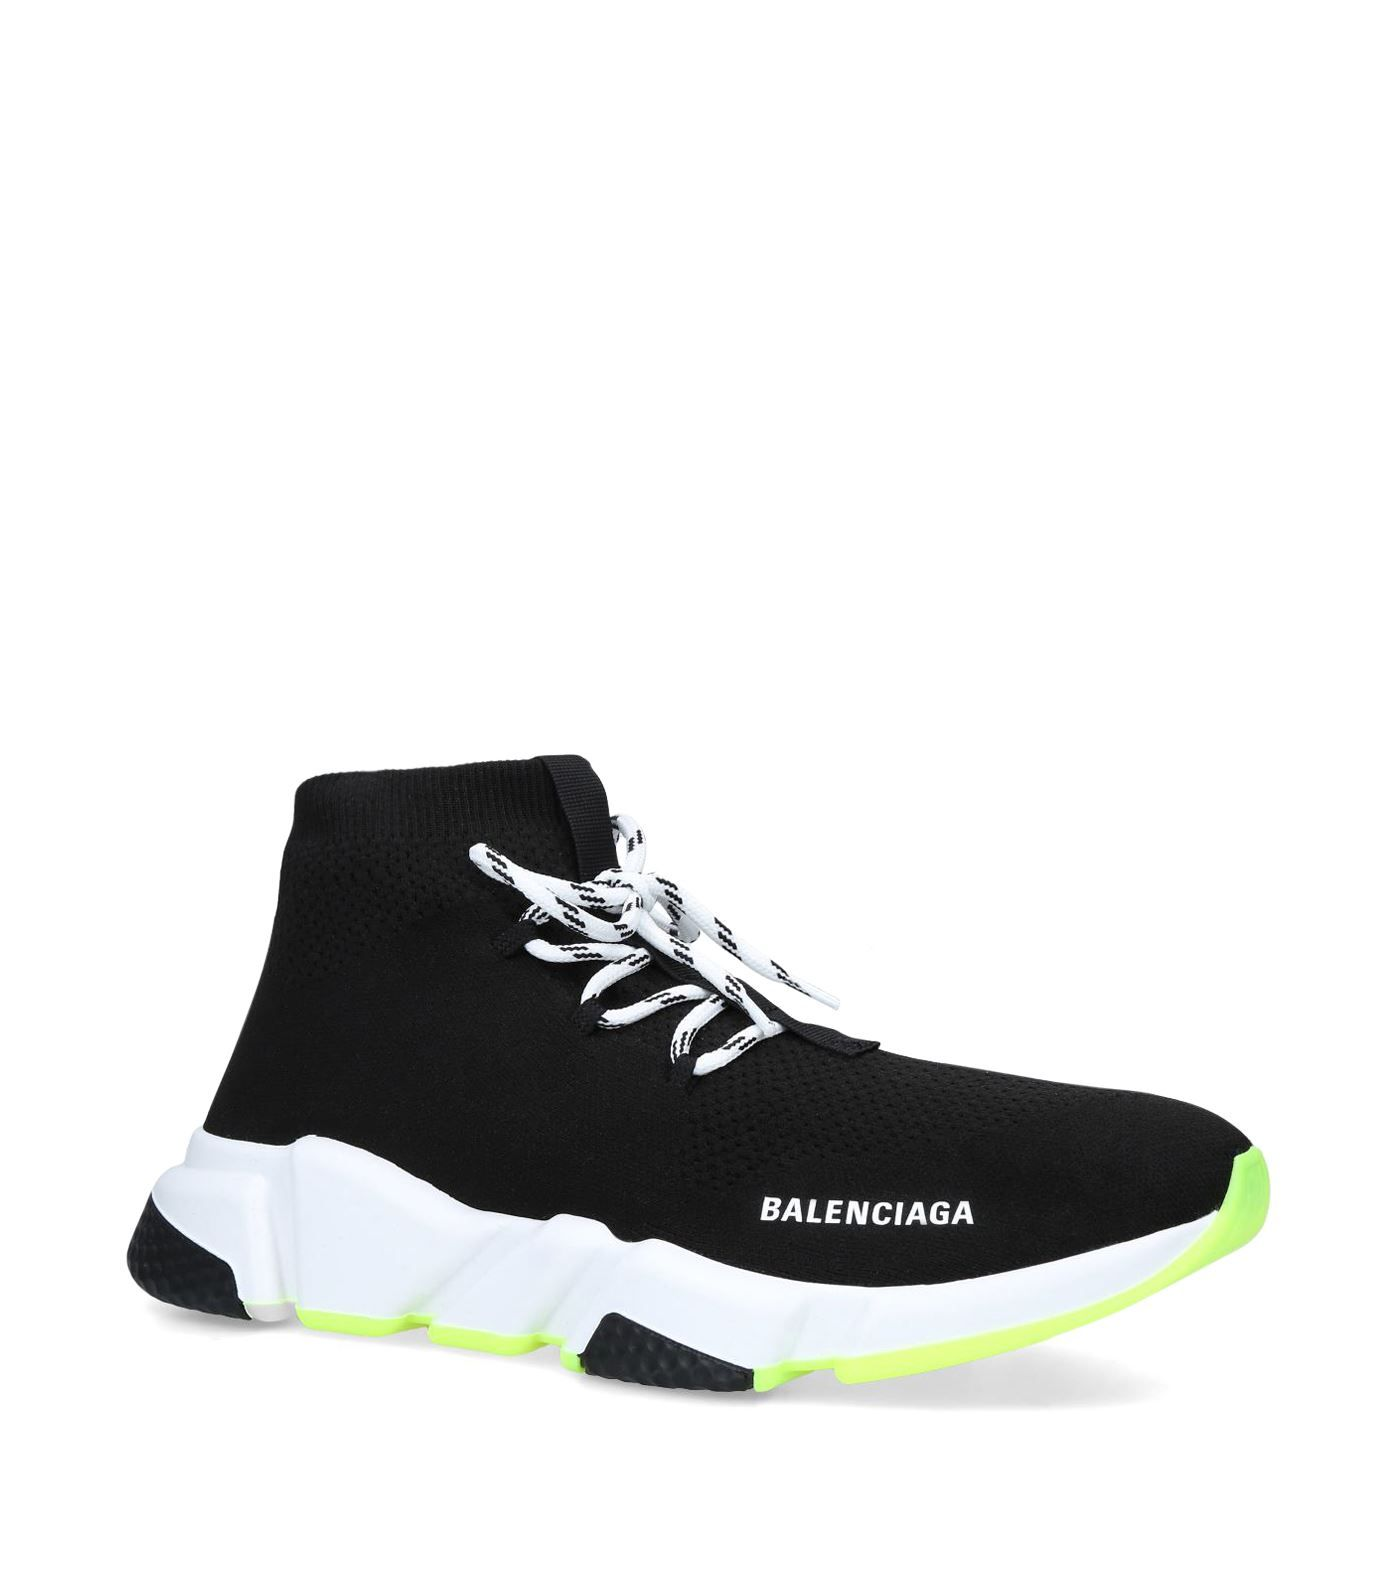 Balenciaga Speed Knit Sneakers Balenciaga Shoes Mens Shoes